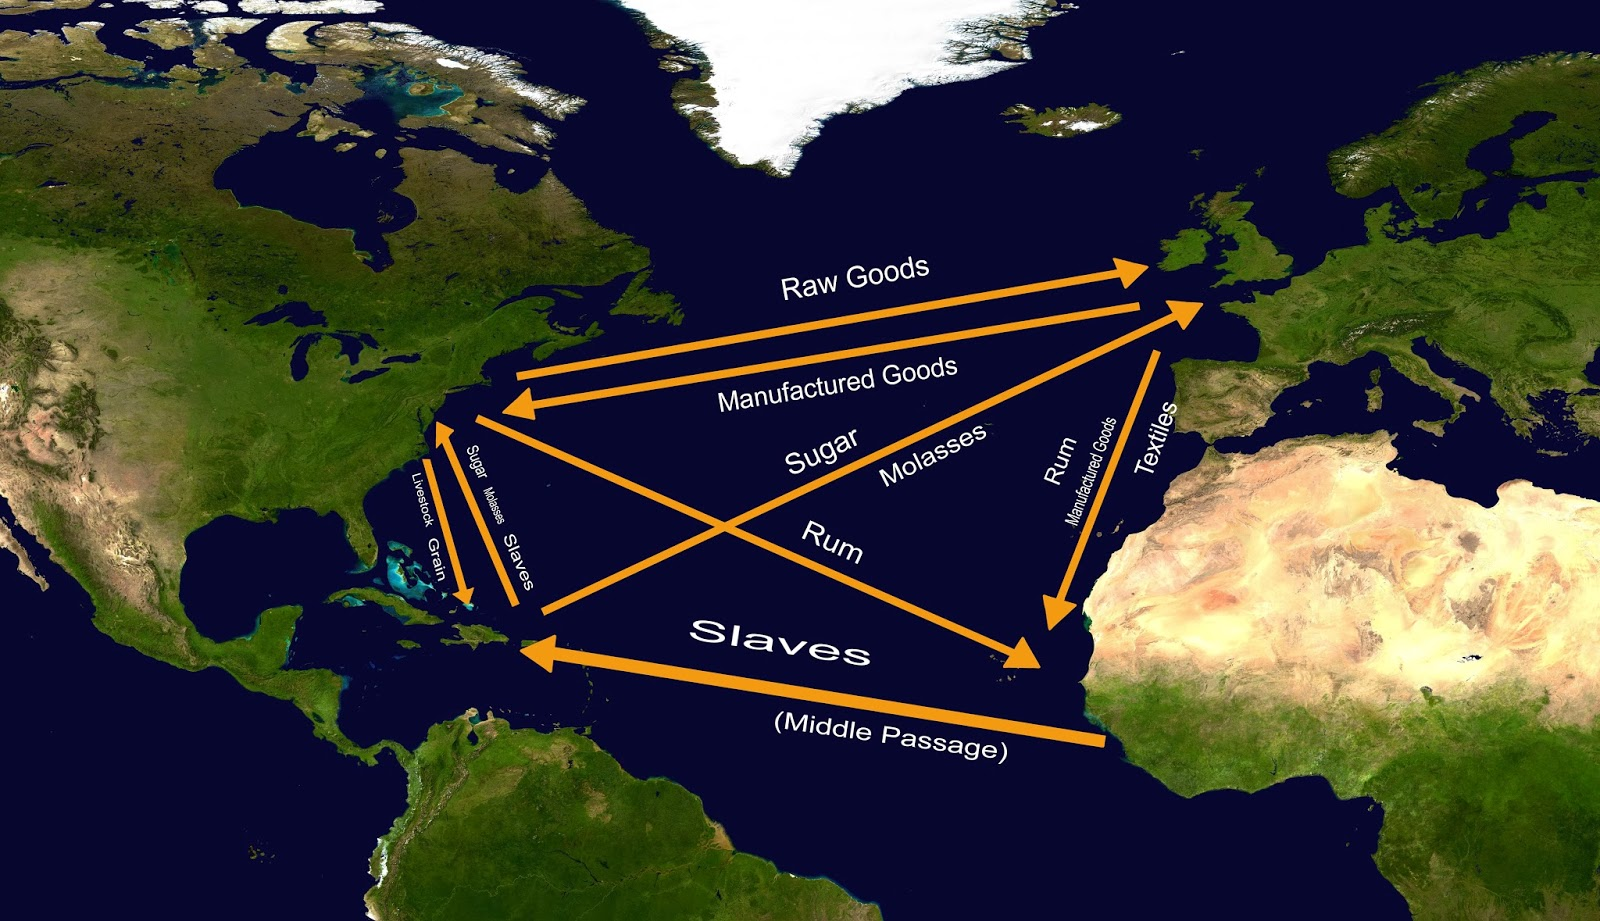 13 colonies triangular trade system